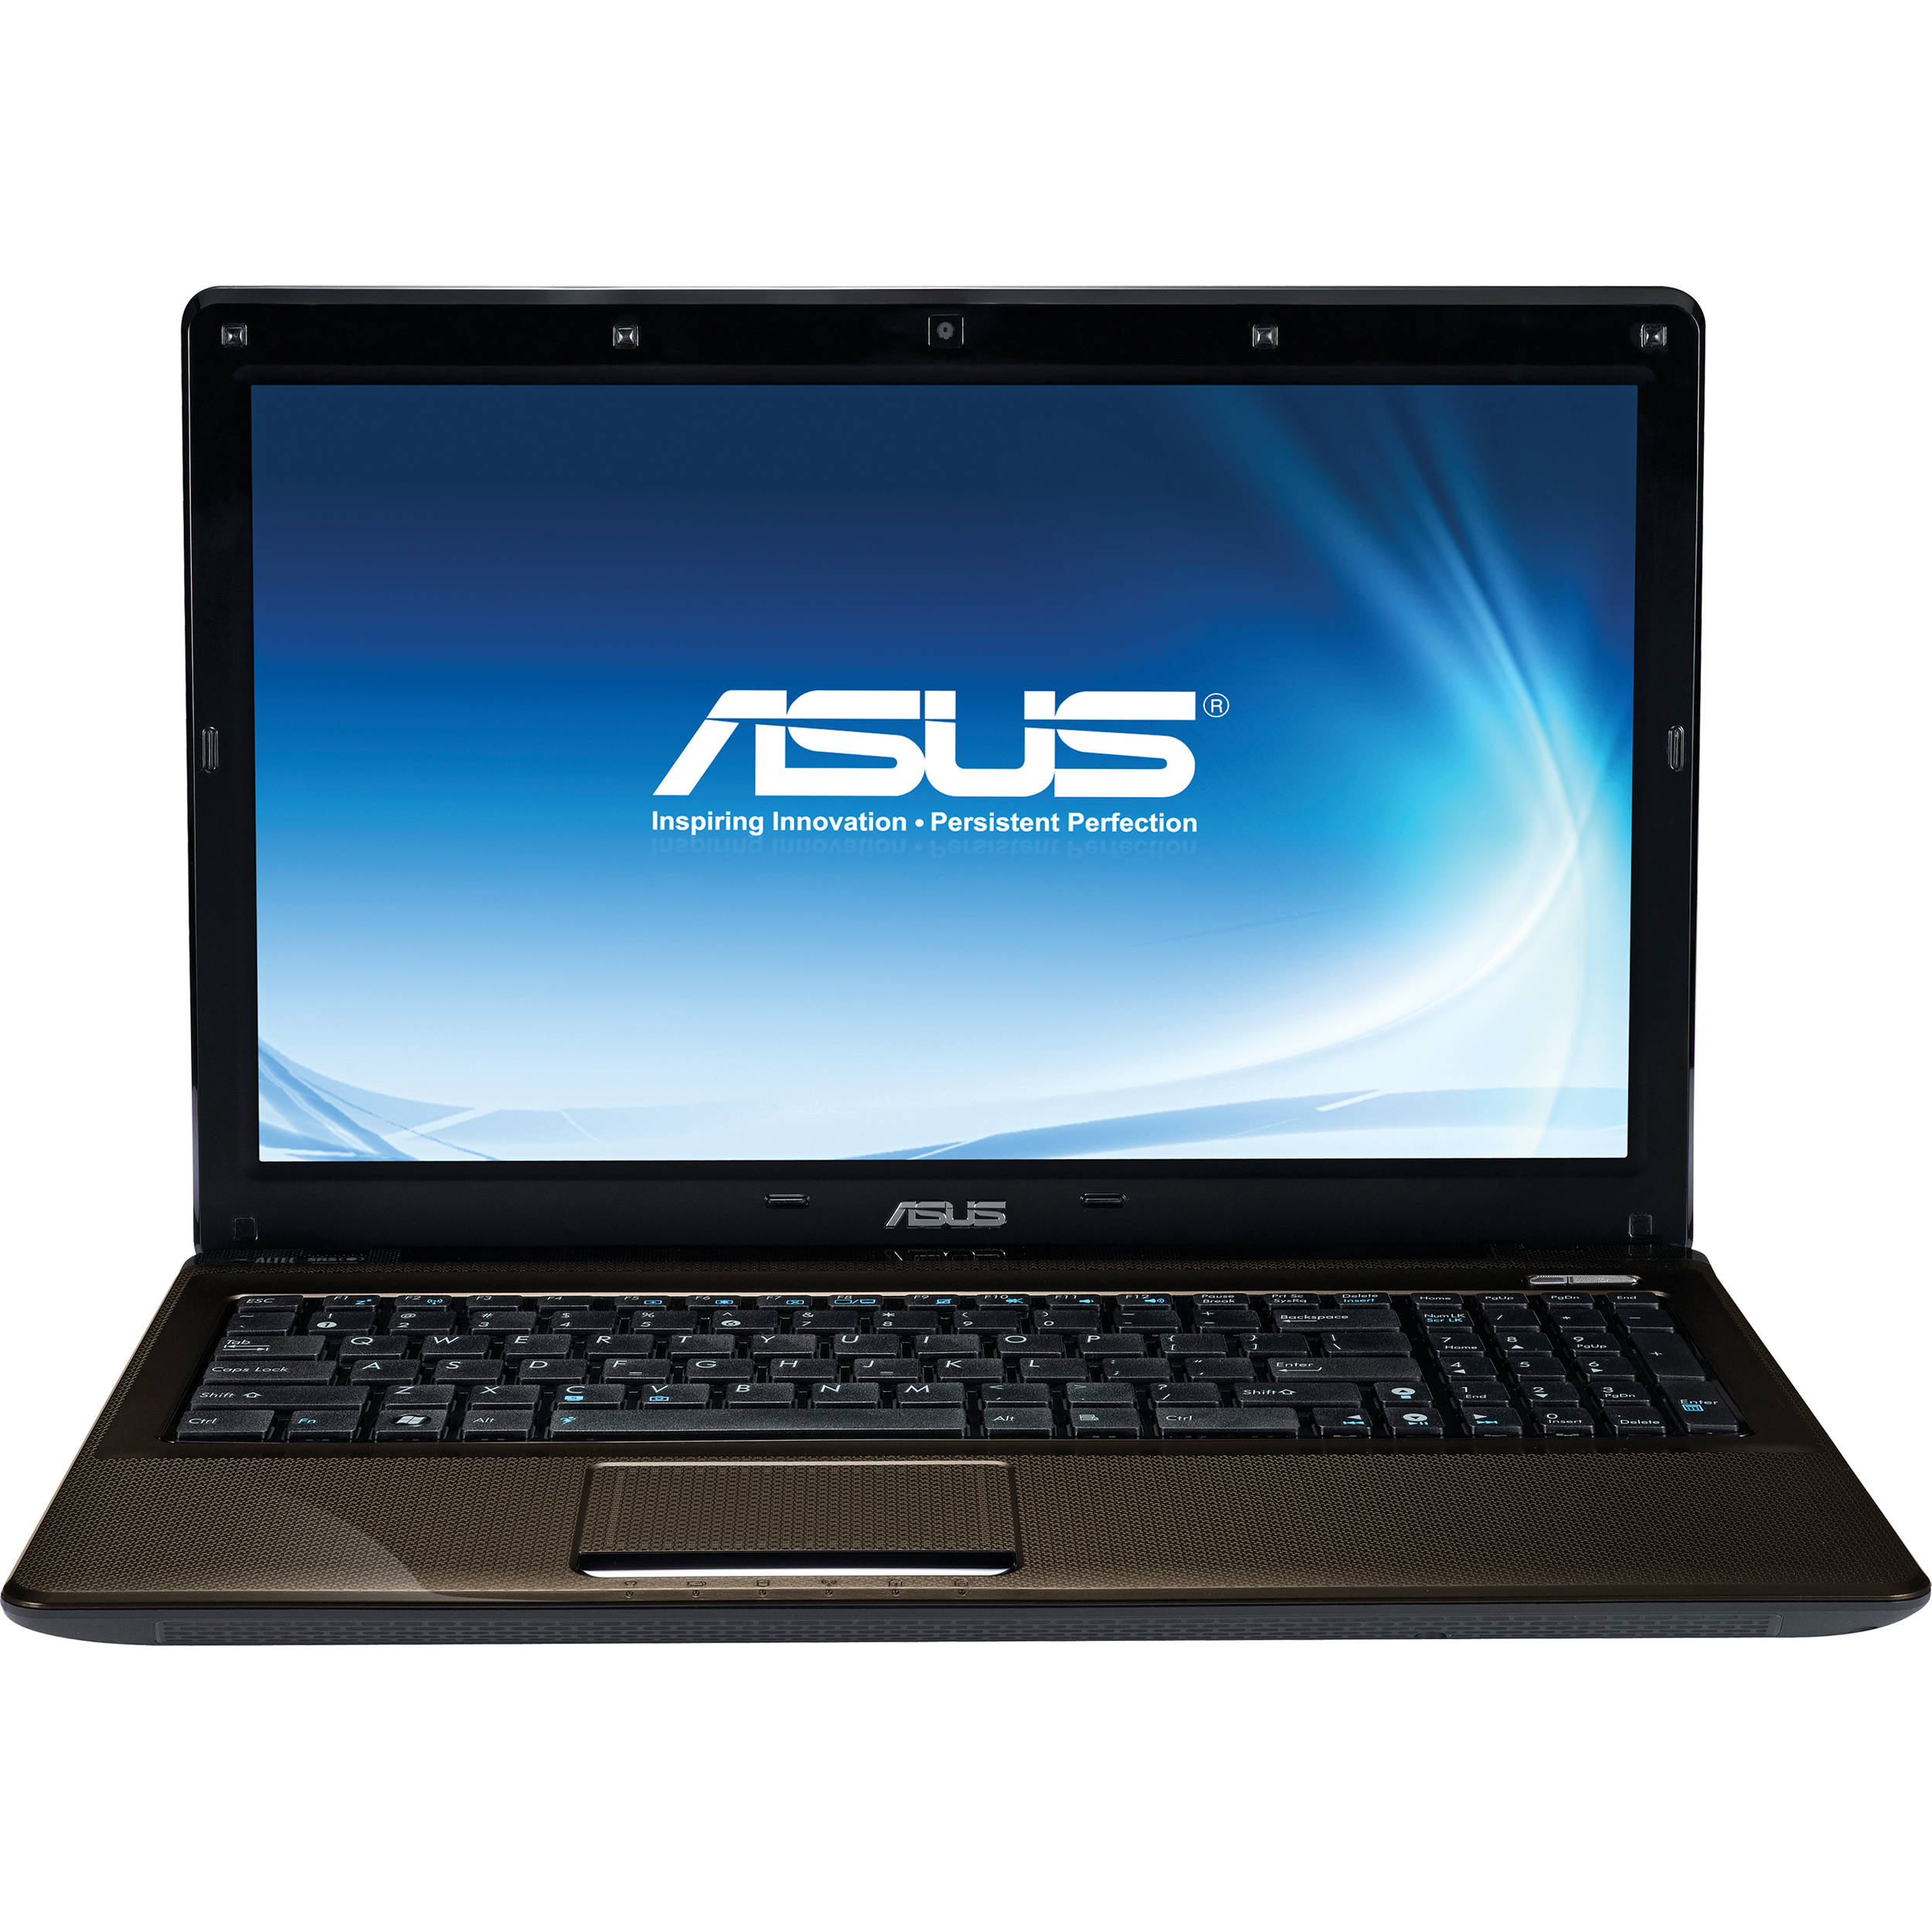 ASUS Z52F NOTEBOOK DRIVERS WINDOWS 7 (2019)